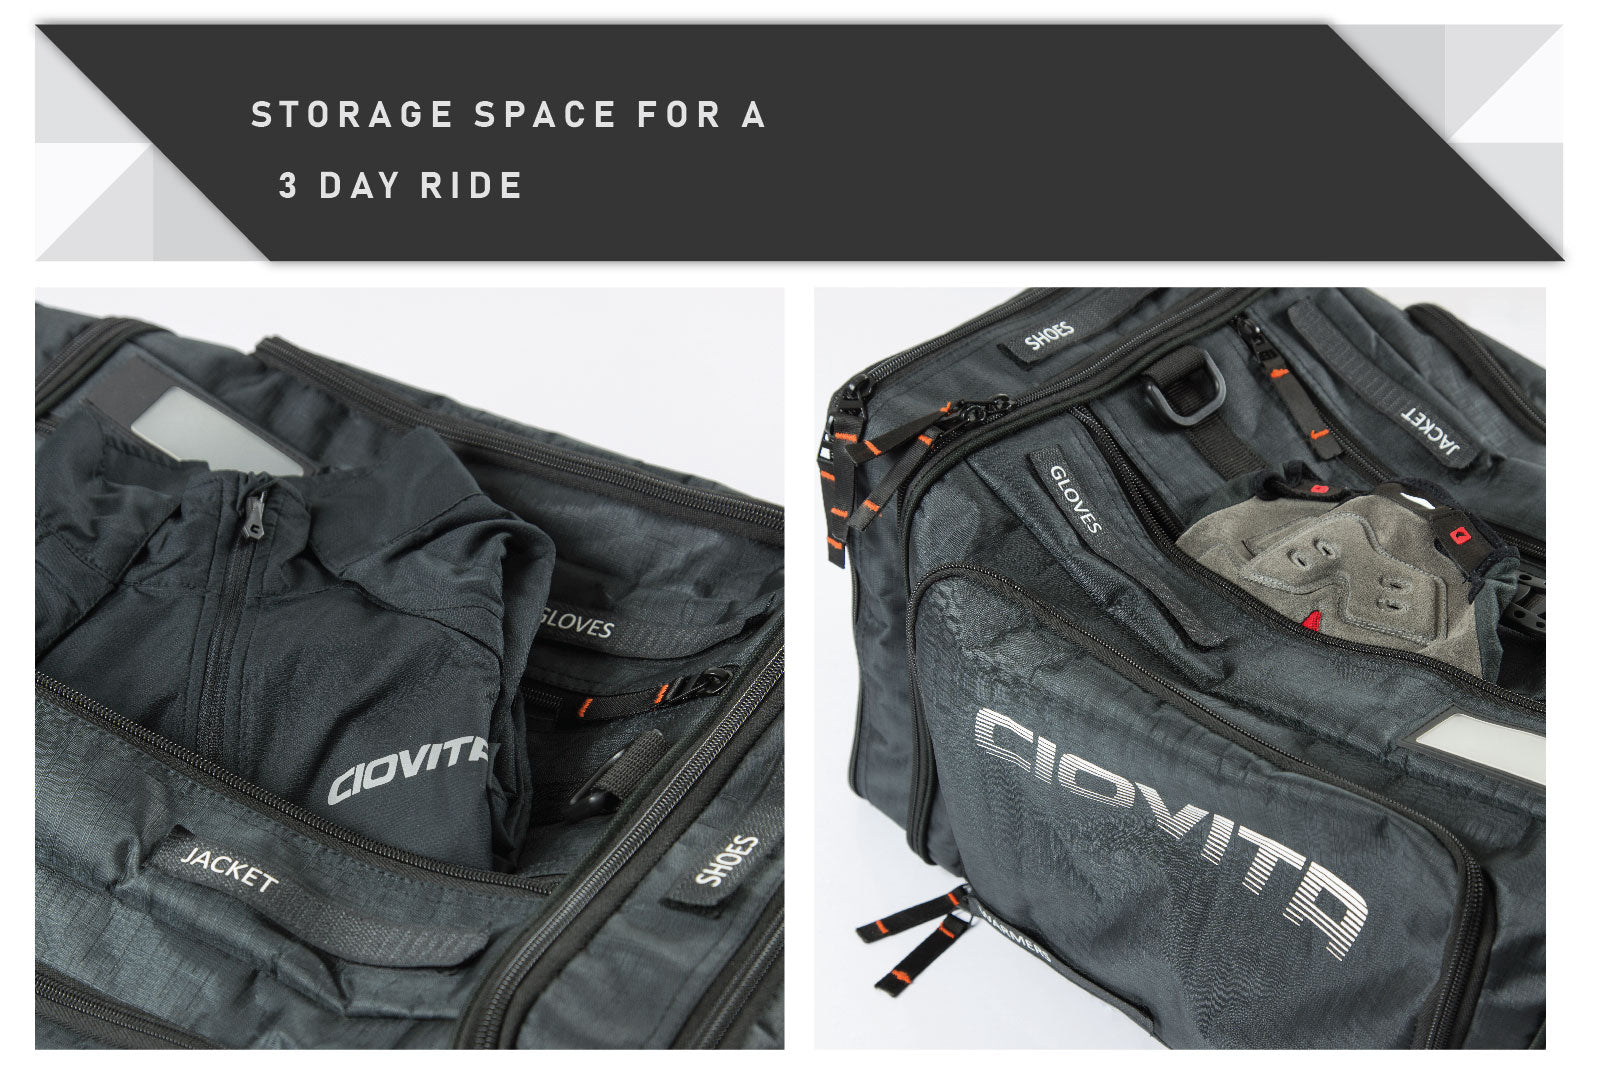 cycling kit bag with lots of storage space